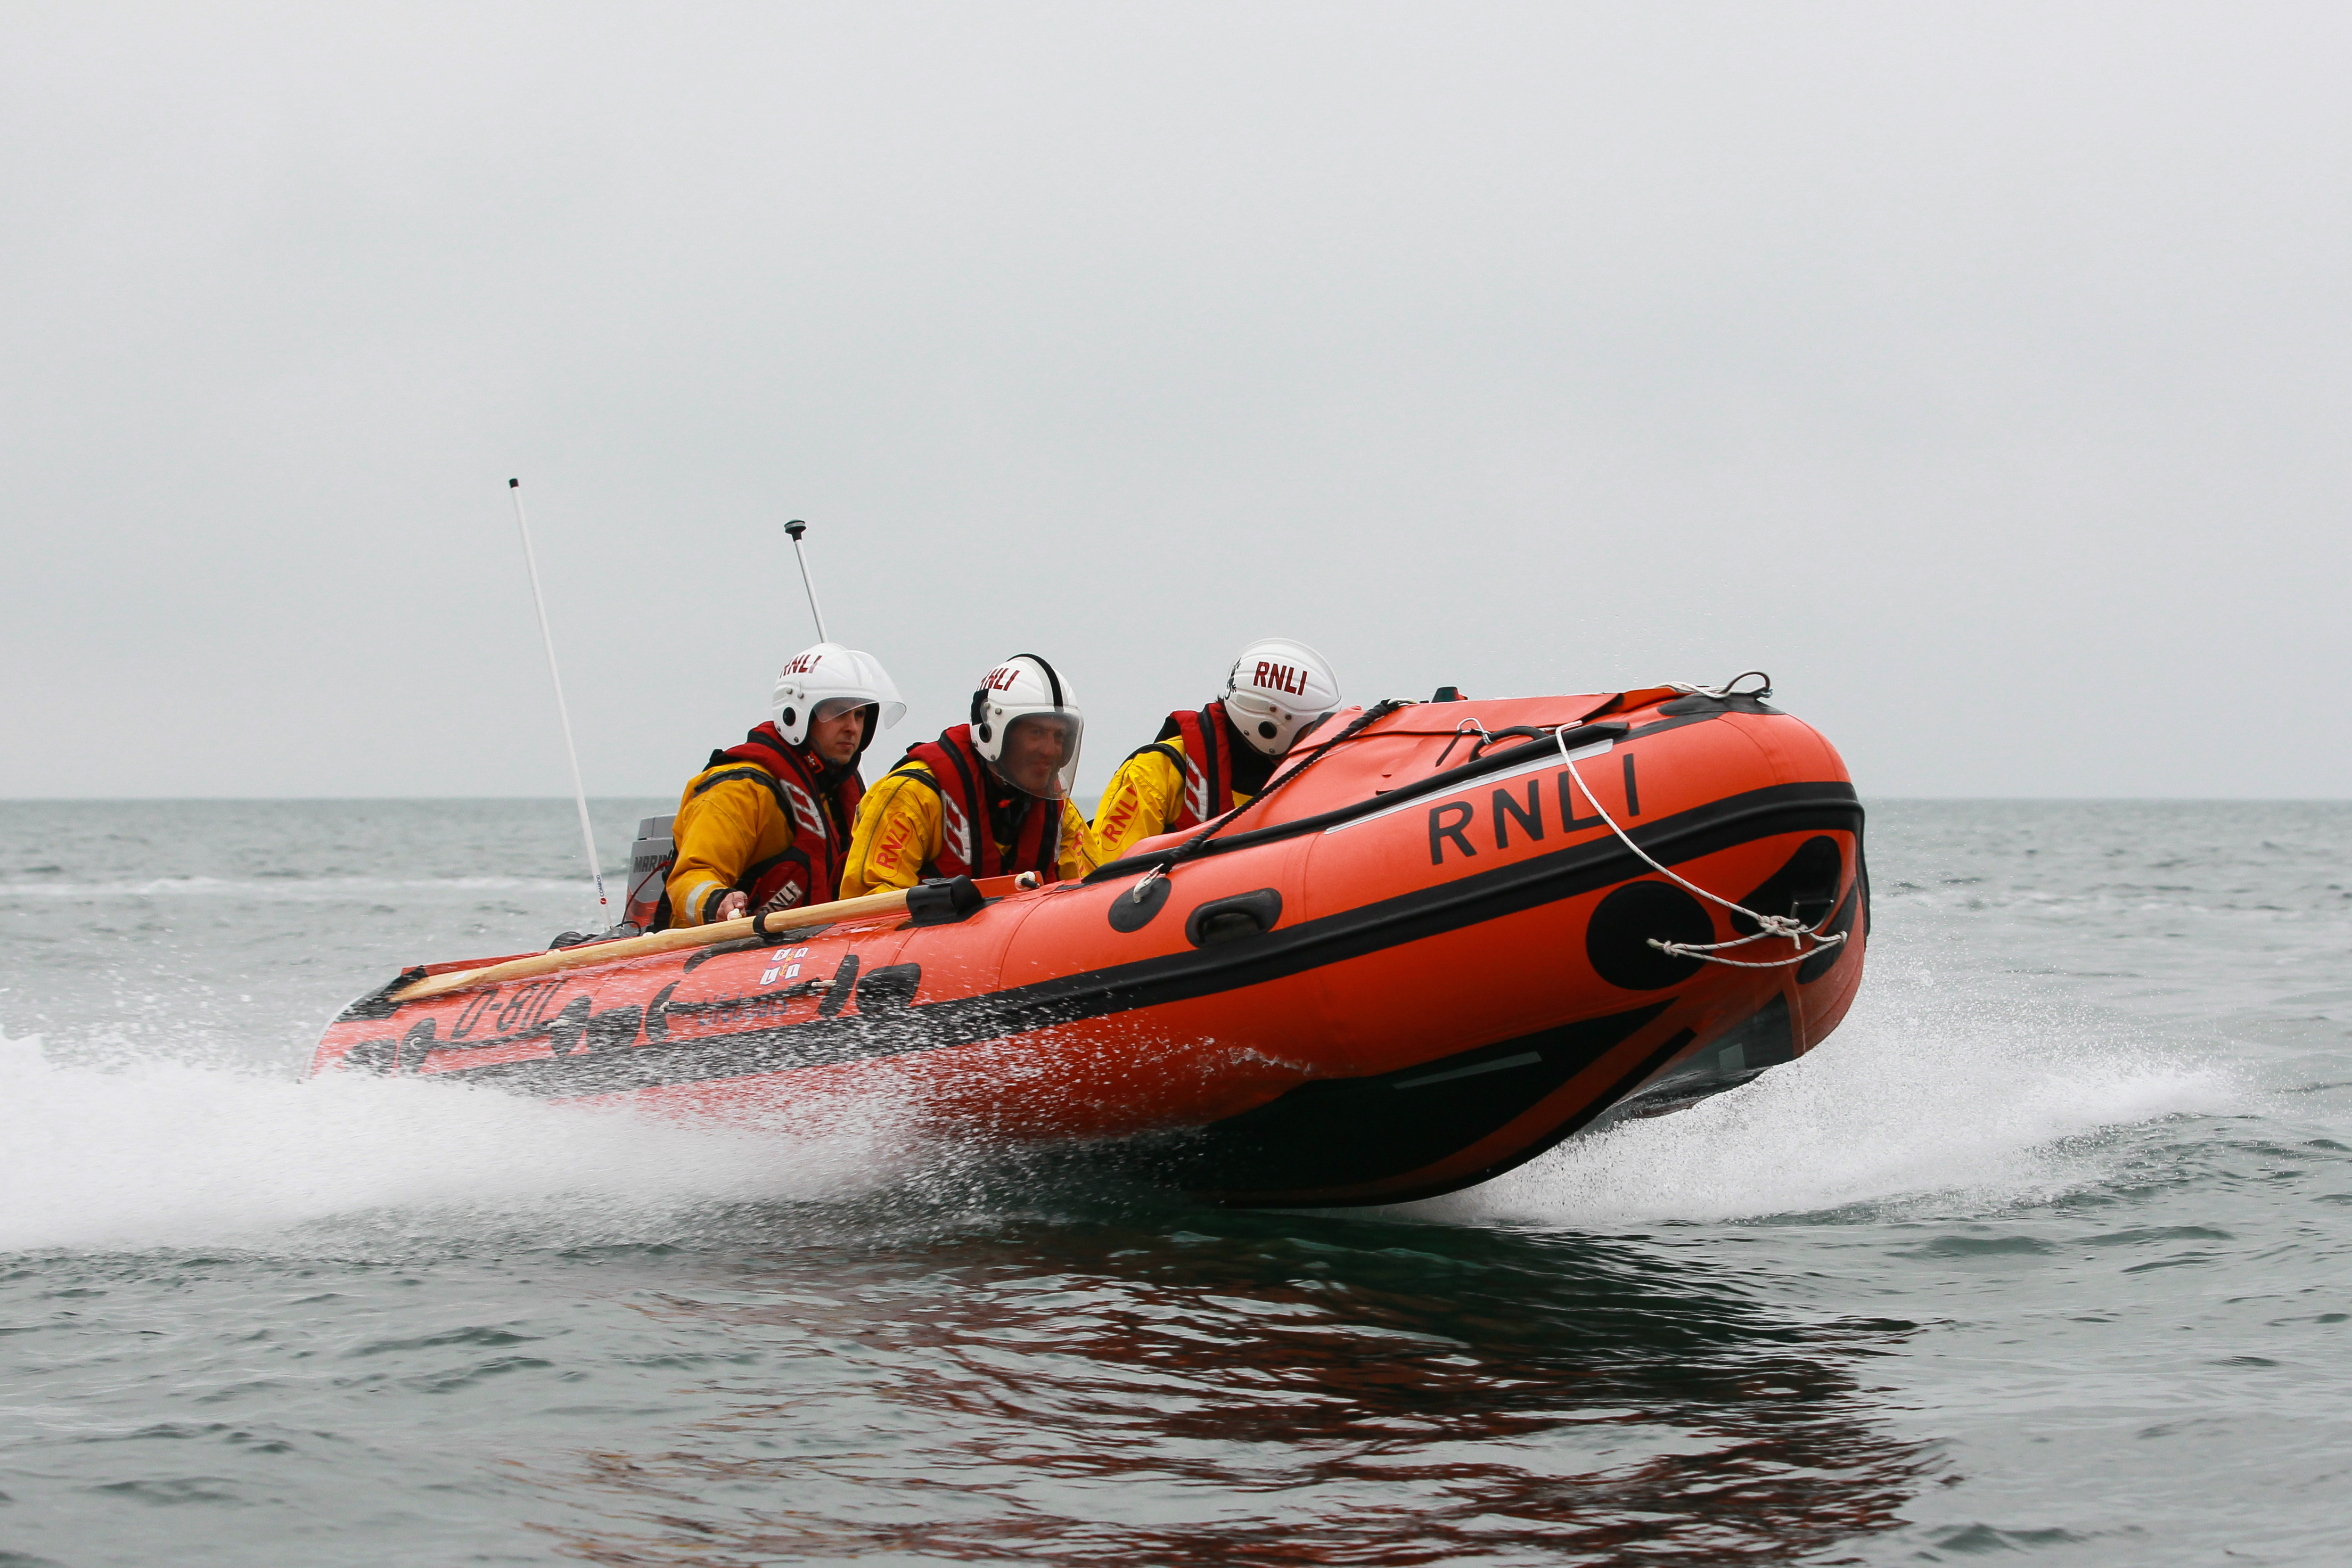 RNLI Inshore Lifeboat at sea